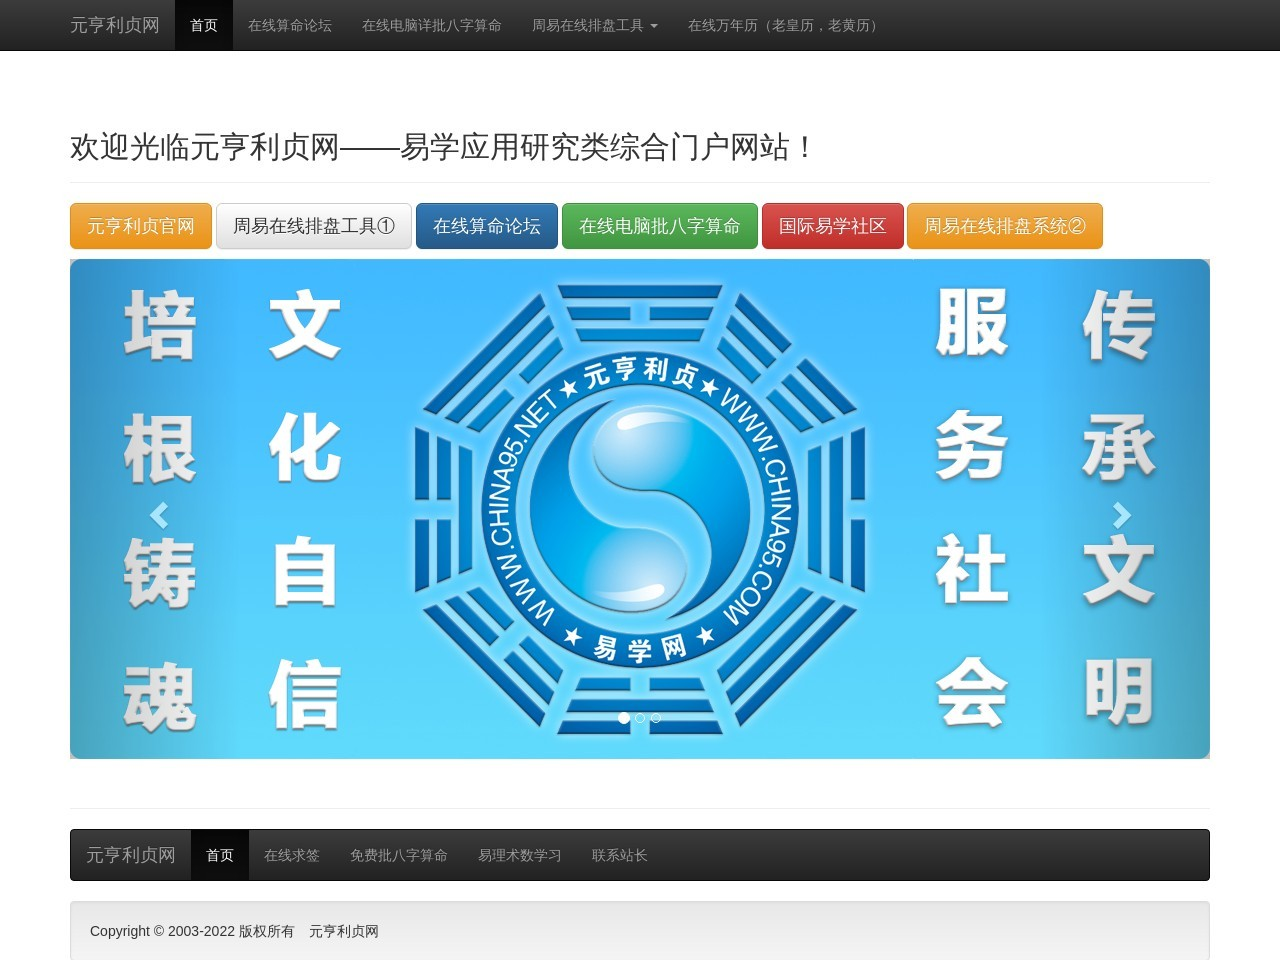 http://china95.net.nerdydata.com